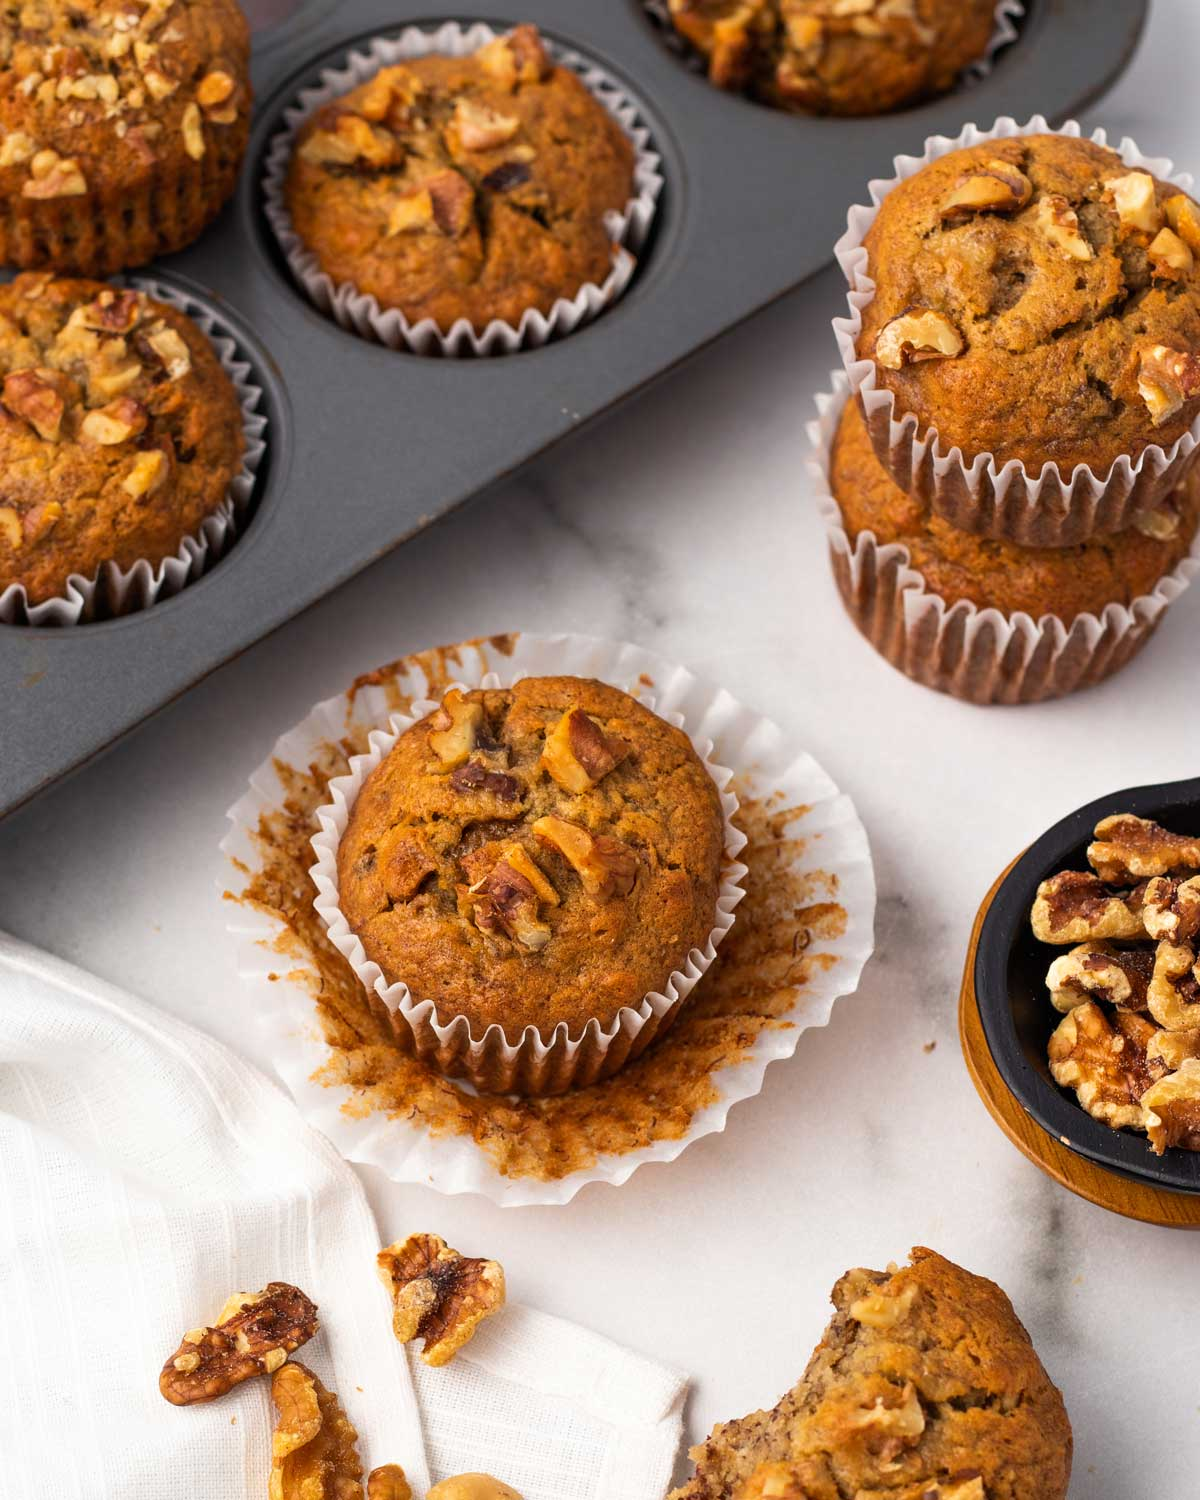 vegan banana nut muffin with the wrapper removed on a marble board